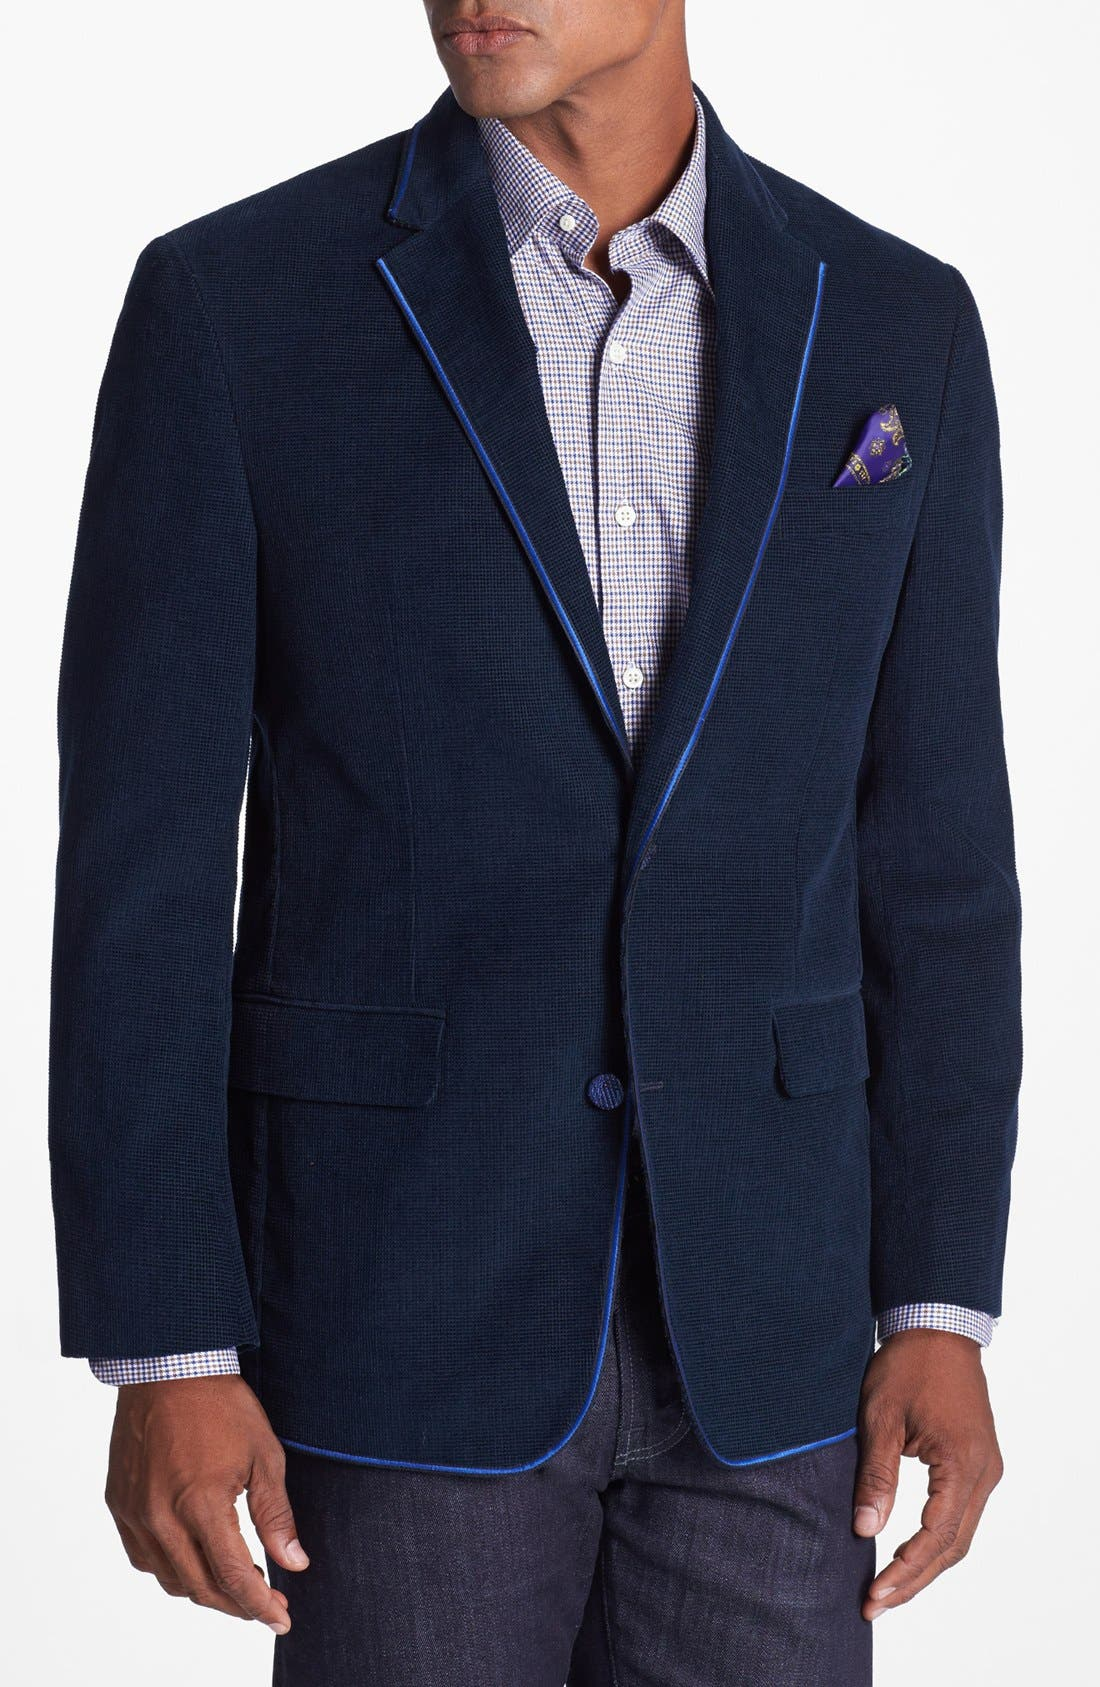 Alternate Image 1 Selected - Robert Graham 'Pico' Corduroy Sportcoat